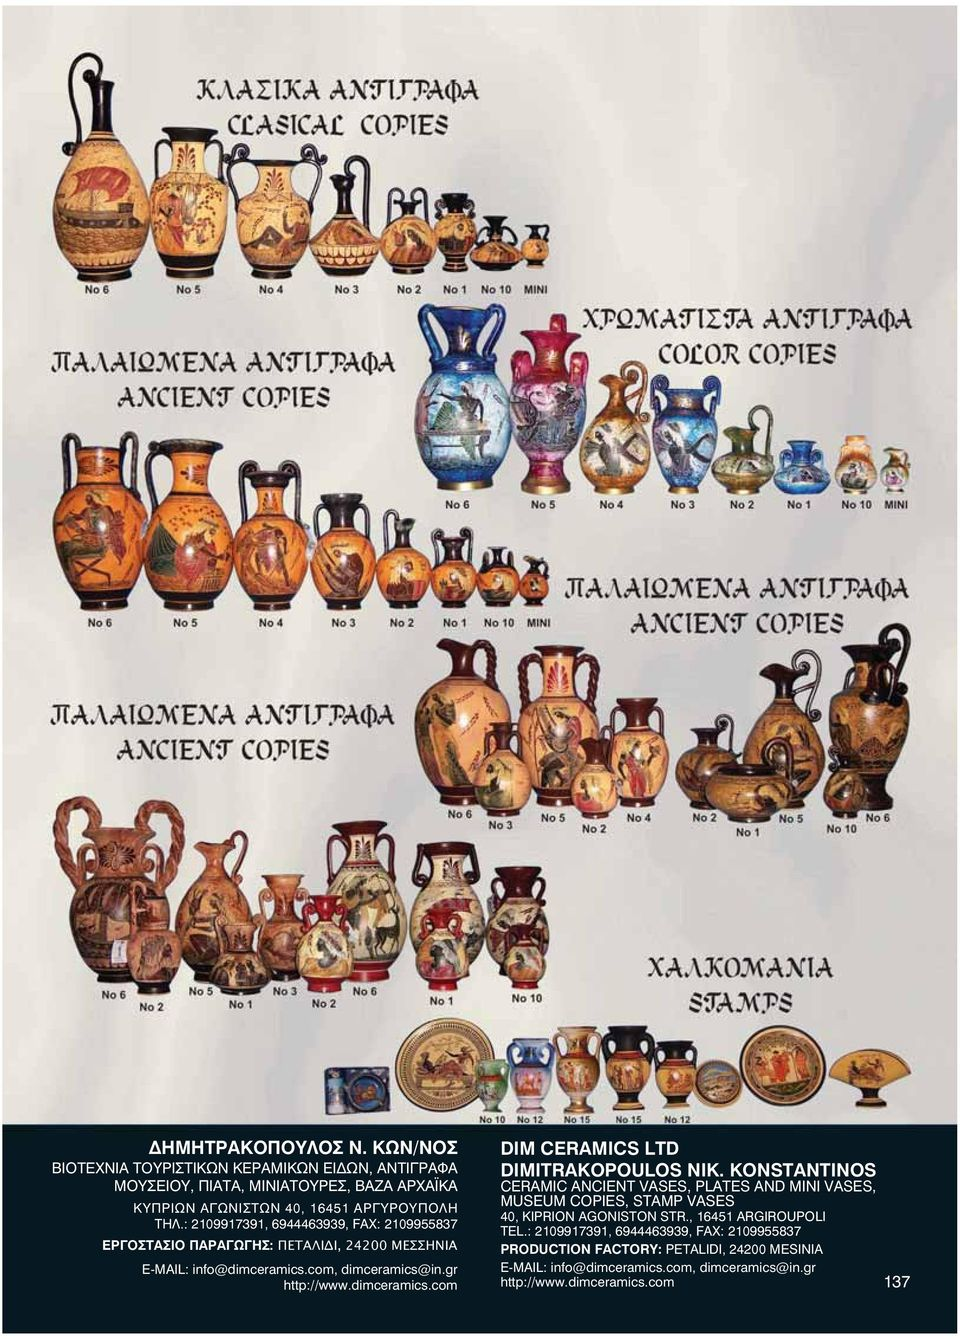 KONSTANTINOS CERAMIC ANCIENT VASES, PLATES AND MINI VASES, MUSEUM COPIES, STAMP VASES 40, KIPRION AGONISΤON STR., 16451 ARGIROUPOLΙ TEL.